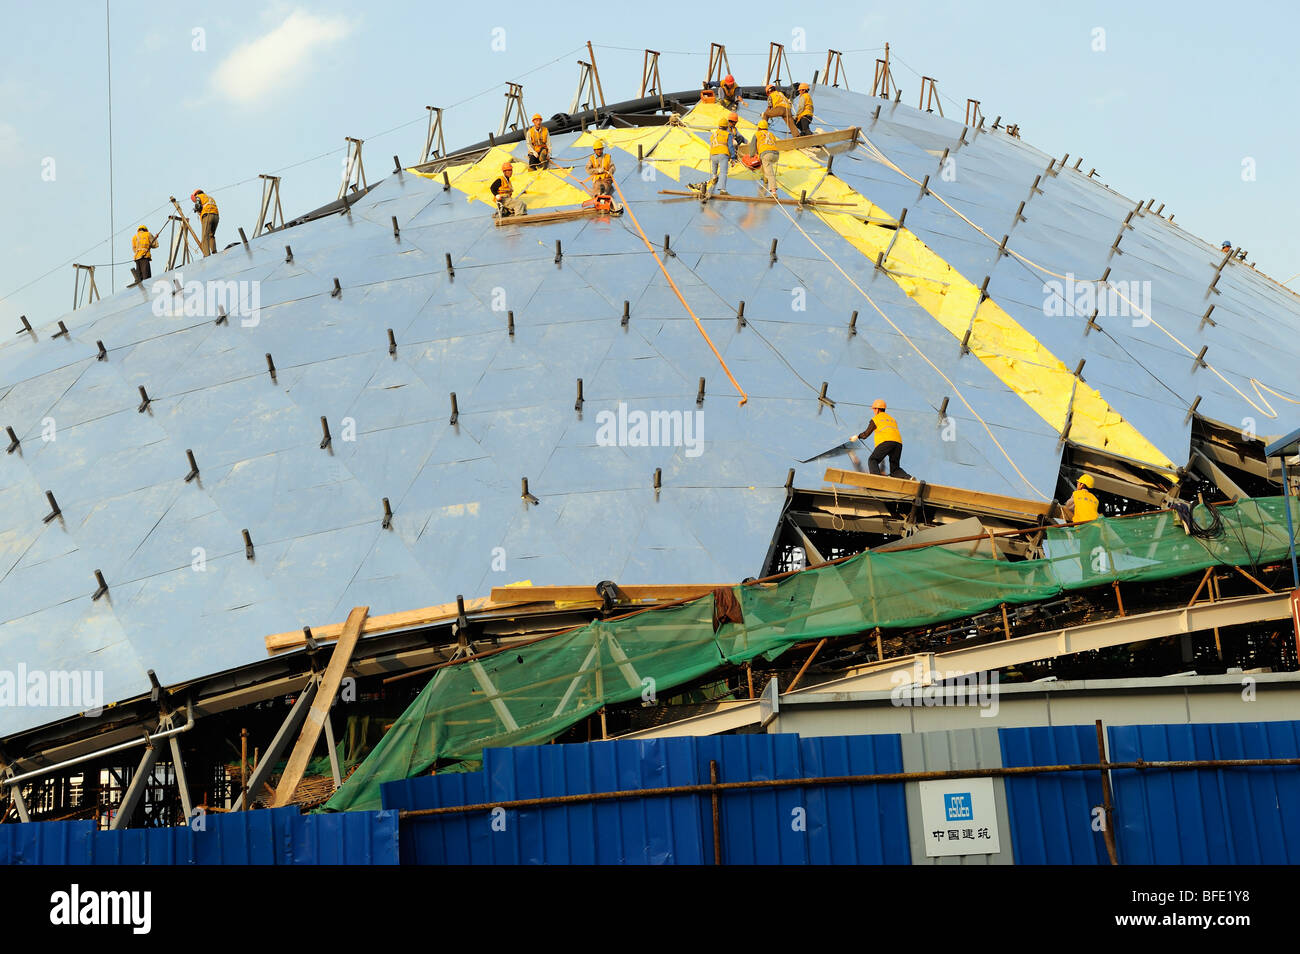 Construction site of the World Expo 2010 in Shanghai China.15-Oct-2009 - Stock Image